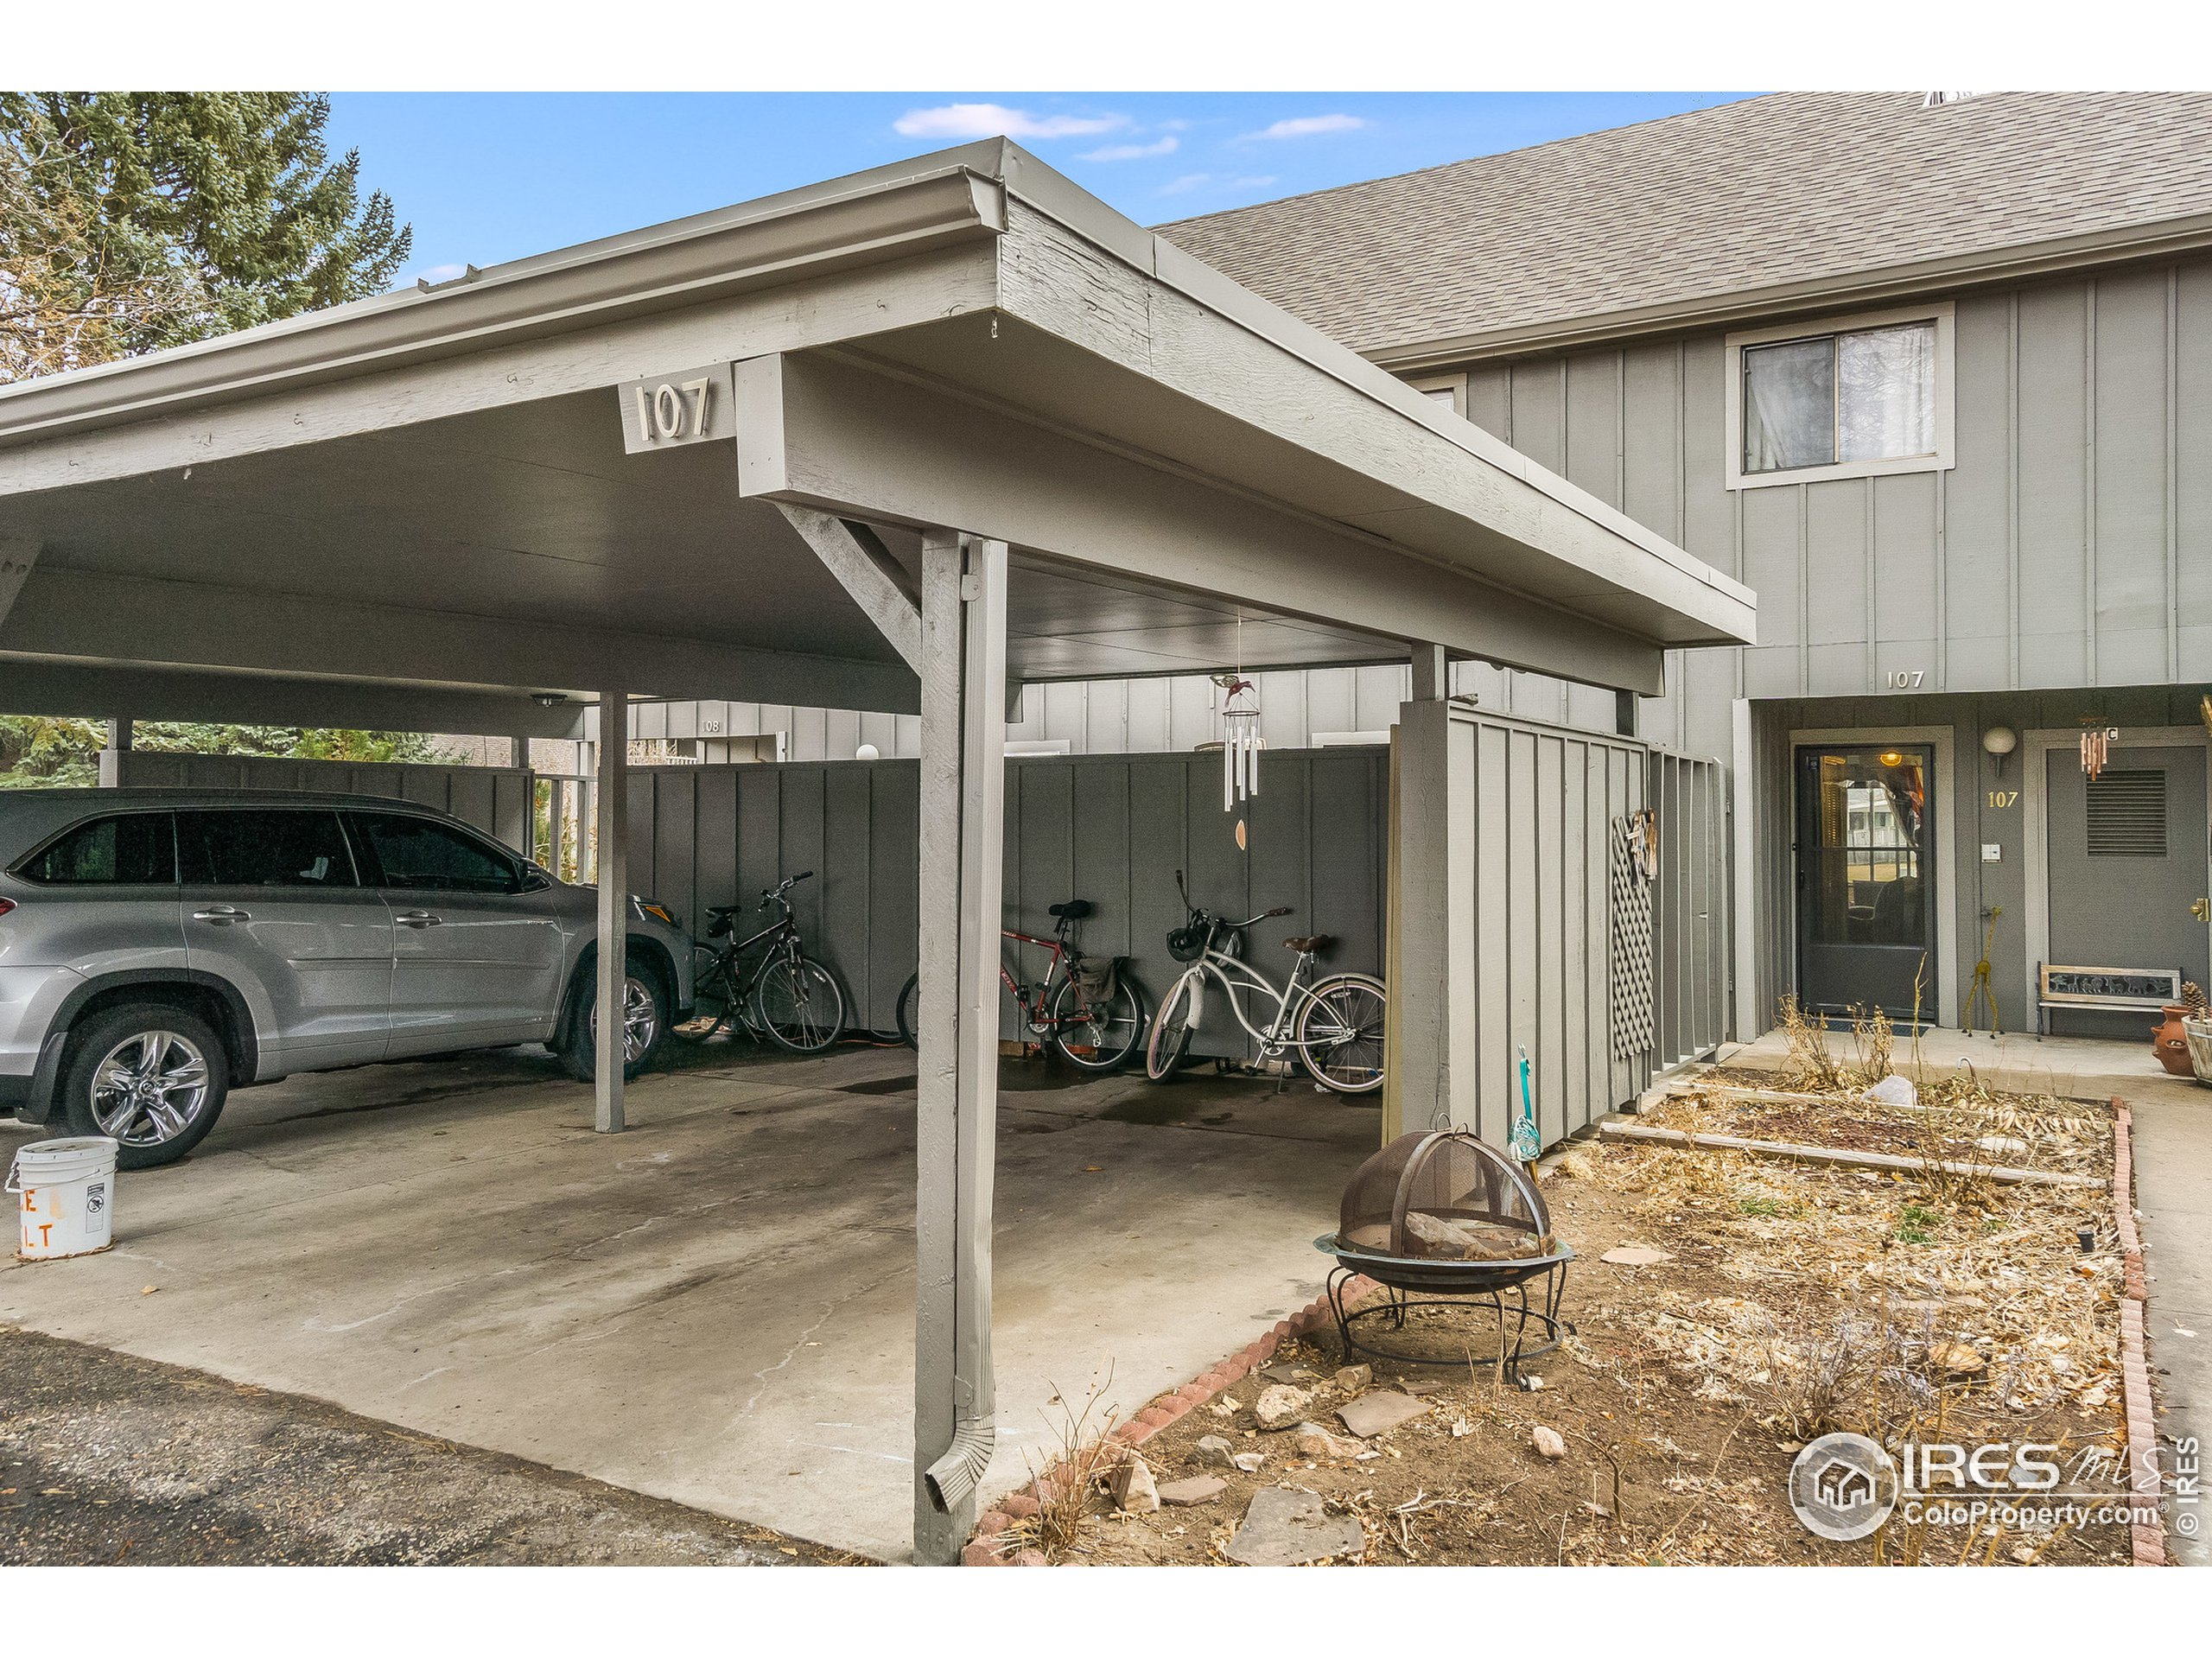 Midtown Fort Collins! Scotch Pines Condo Opportunity - you don't want to miss it! This condo will make a great home or investment! Trendy stained concrete floor on the main level, and a rustic barn wood accent wall in the living room! Upstairs offers spacious bedrooms with room for everyone! Enjoy access to the large green space off the back patio, and beautiful perennials in the front garden area. Don't miss the tennis courts, swimming pool, and clubhouse! HOA dues include heat, water, sewer, trash, snow removal, common space landscaping, exterior maintenance, pool, tennis courts, and clubhouse access. Walk or ride your bike to the nearby Sprouts, The Fox and the Crow, Rise! and other fun shops and restaurants.